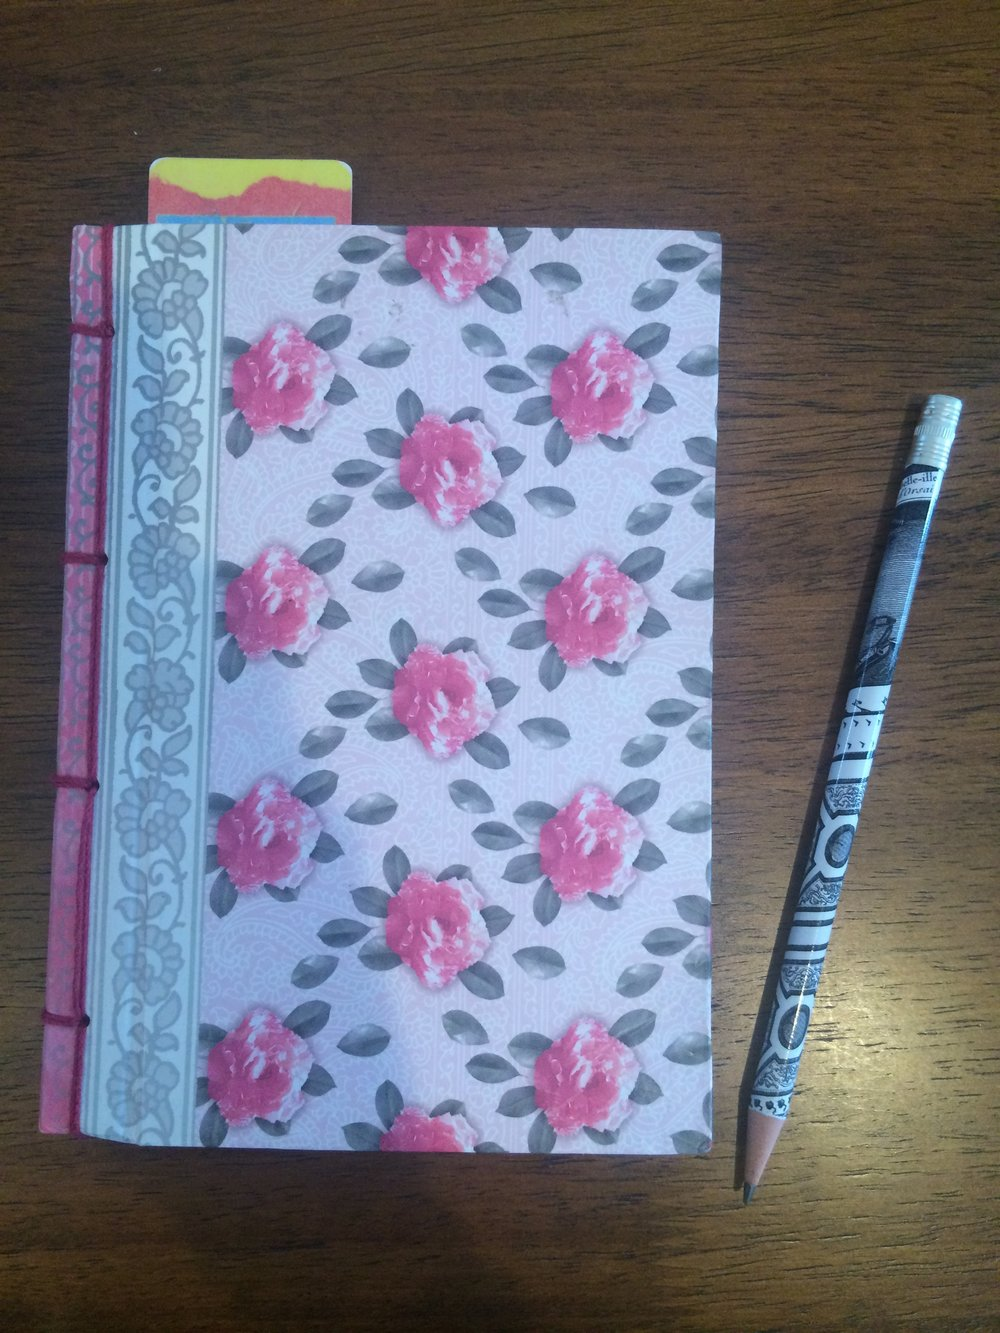 My journal and pen are ready to explore.